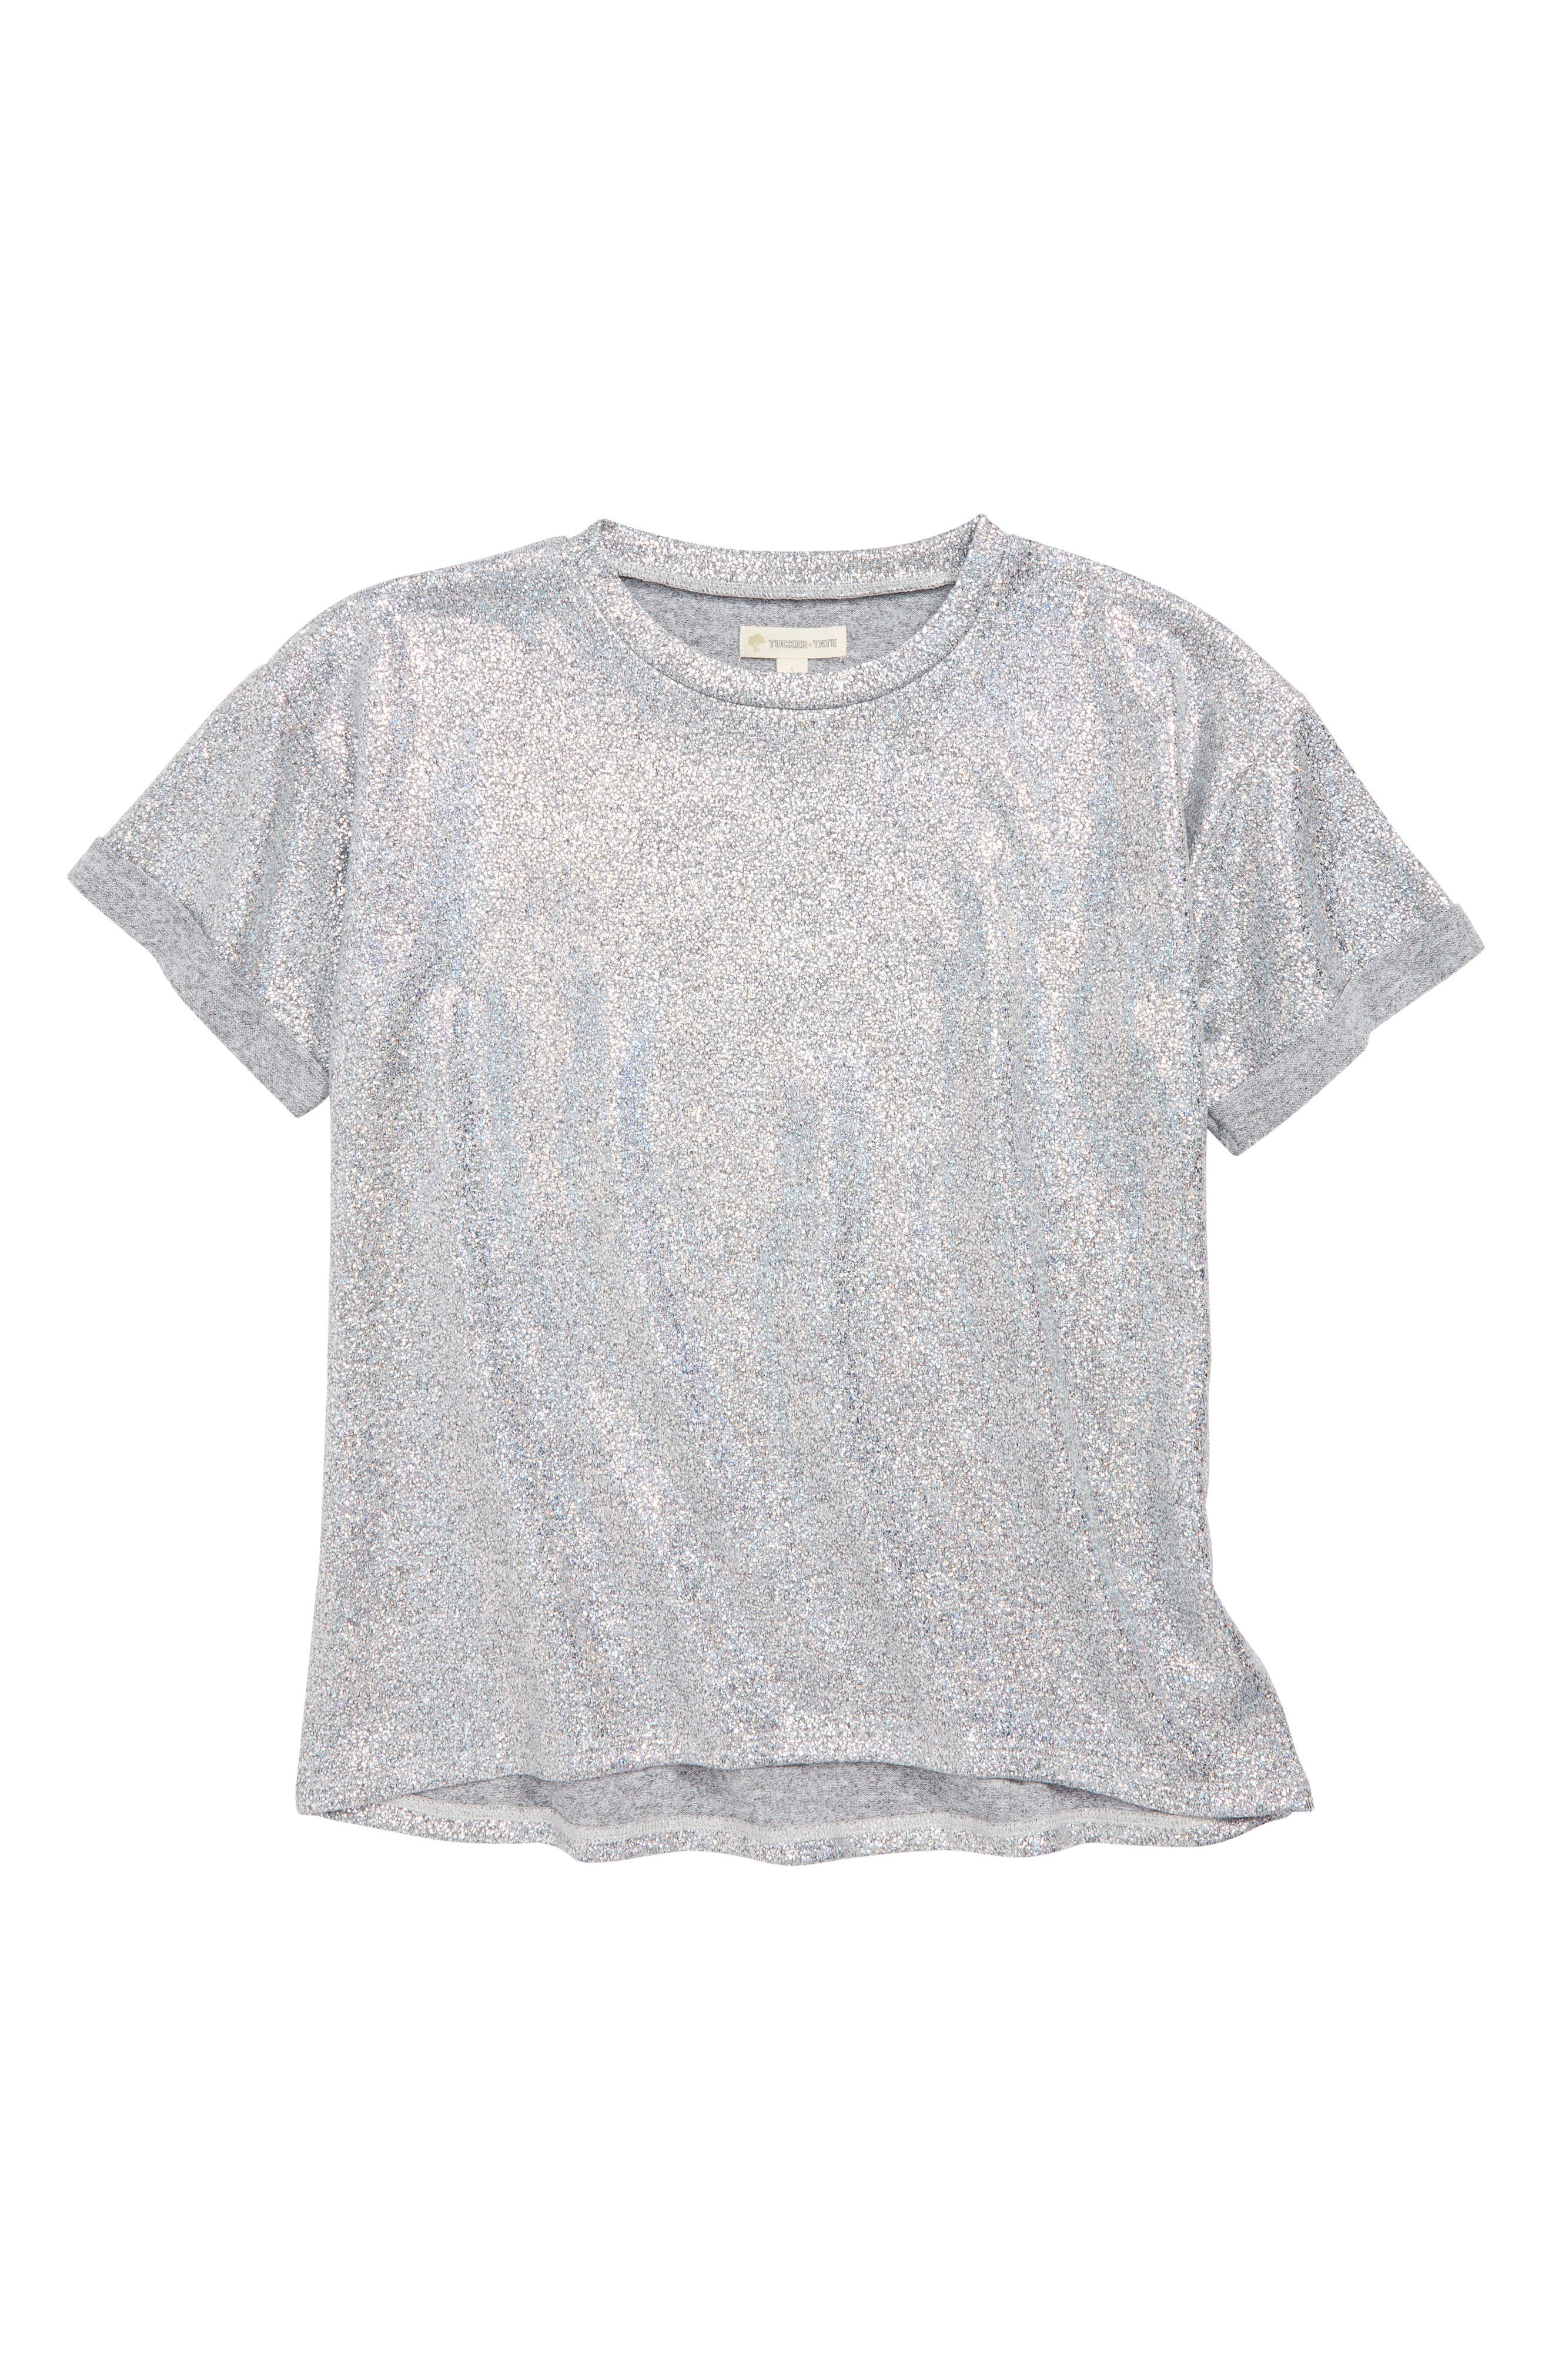 Oversize Sparkle Tee,                         Main,                         color, METALLIC SILVER